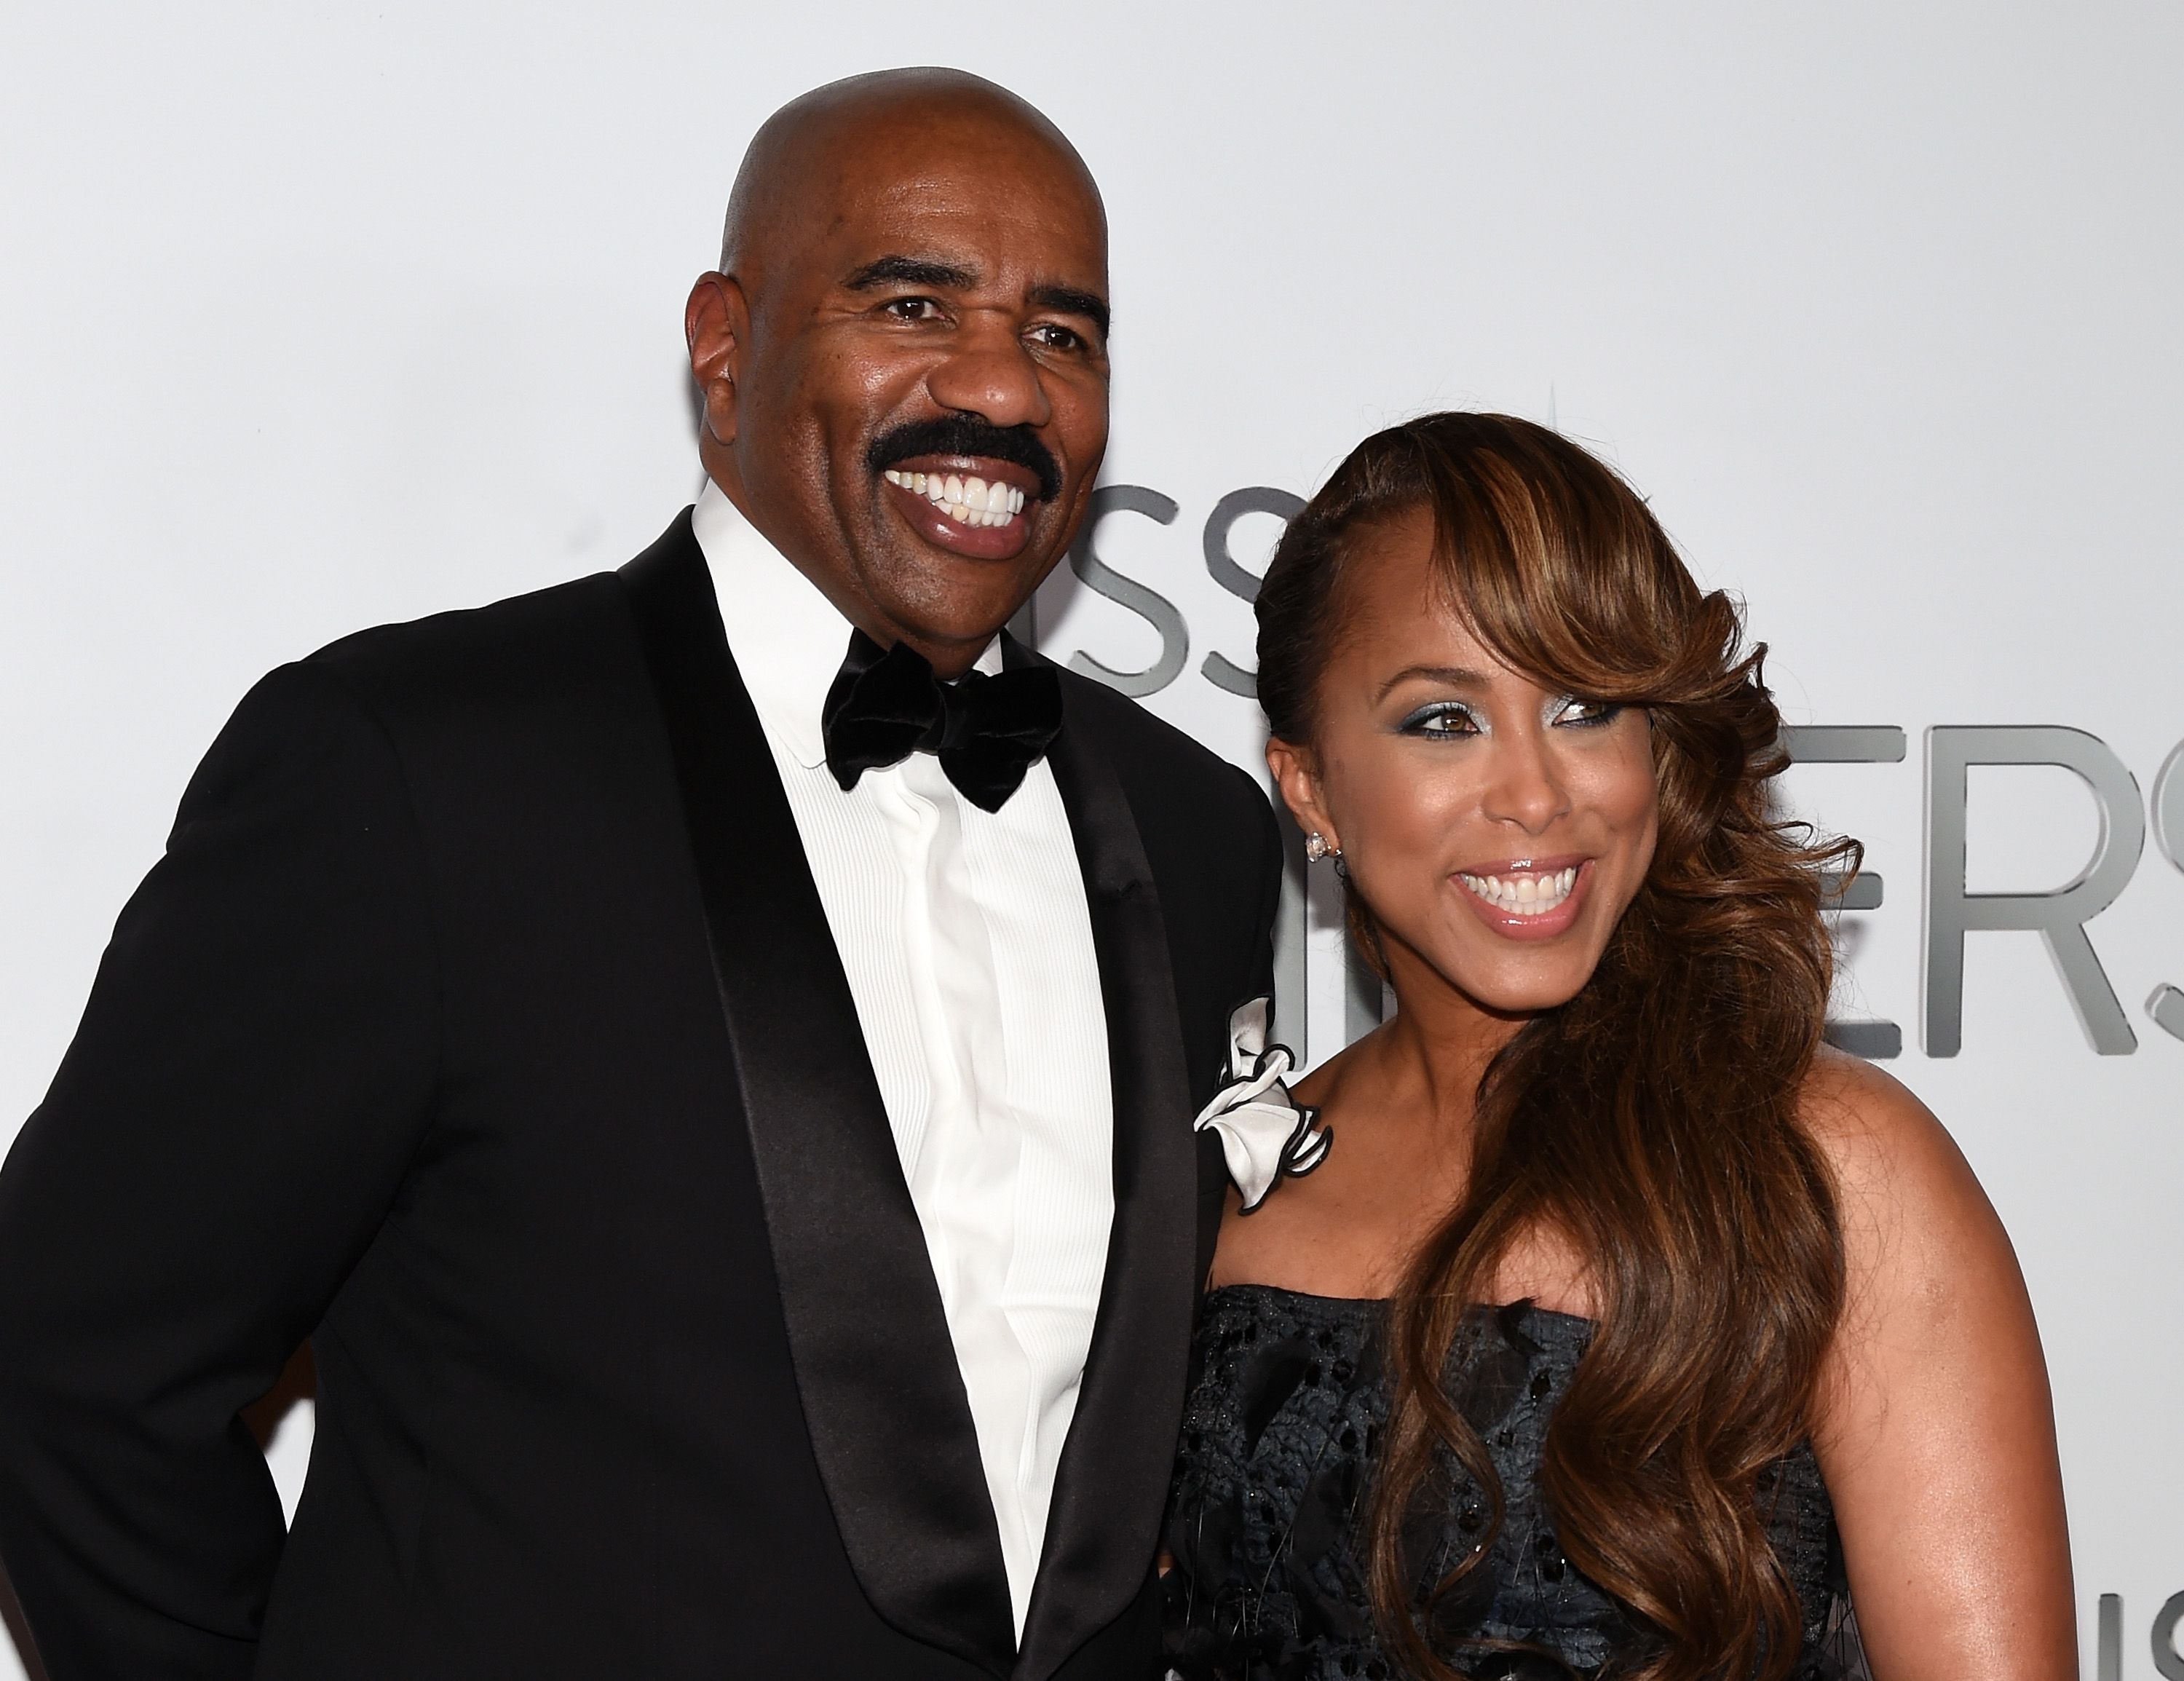 Steve Harvey and Marjorie Harvey at the 2015 Miss Universe Pageant at Planet Hollywood Resort & Casino on December 20, 2015. | Photo: Getty Images